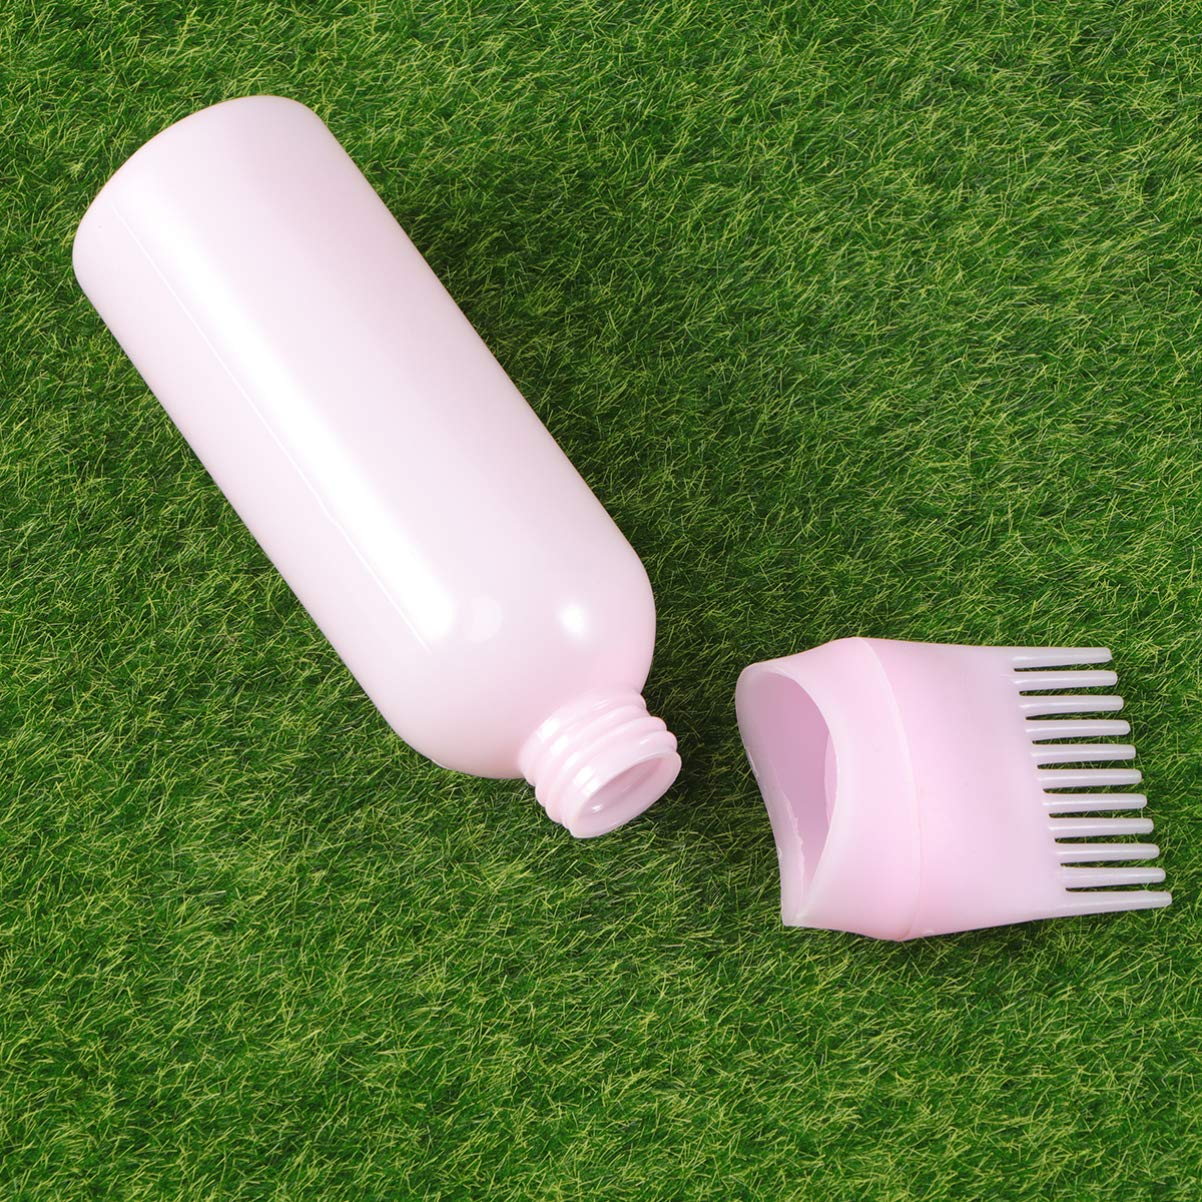 Minkissy 3pcs Hair Dye Bottle Root Comb Applicator Dispensing with Graduated Scale Salon Hair Coloring, Dye and Scalp Treament Essential (White Purple Pink)